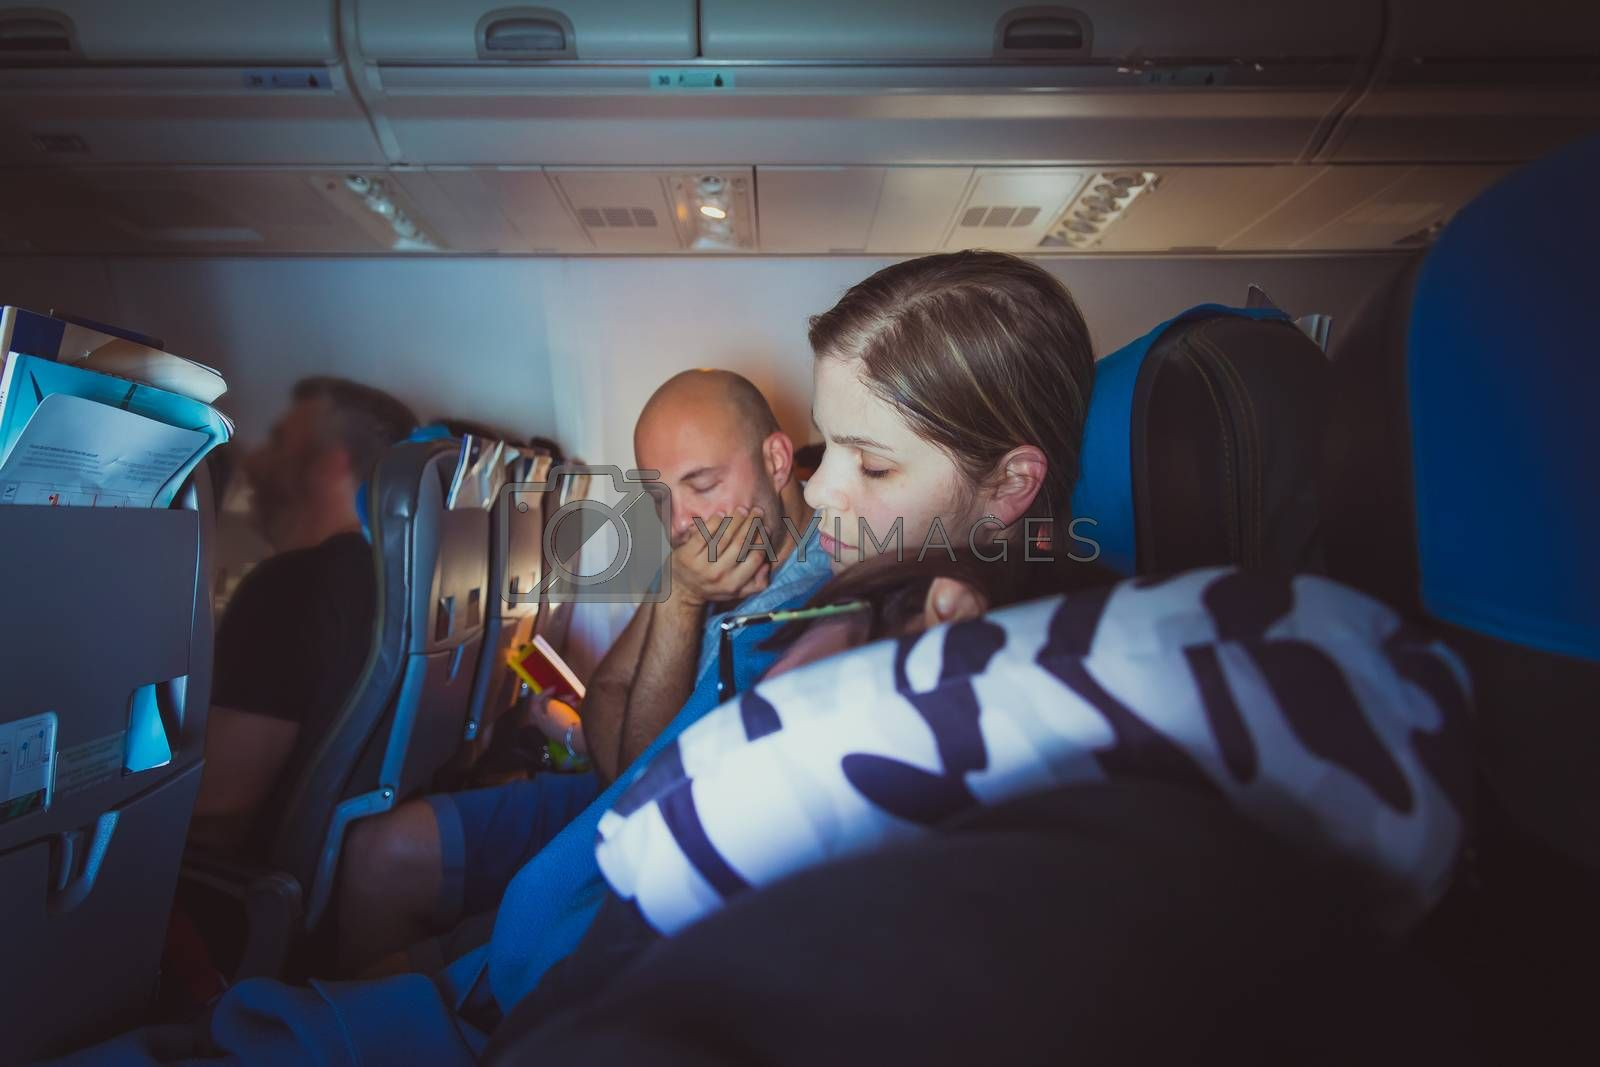 Tired caucasian men and women sleeping on seats while traveling in a commercial airplane.